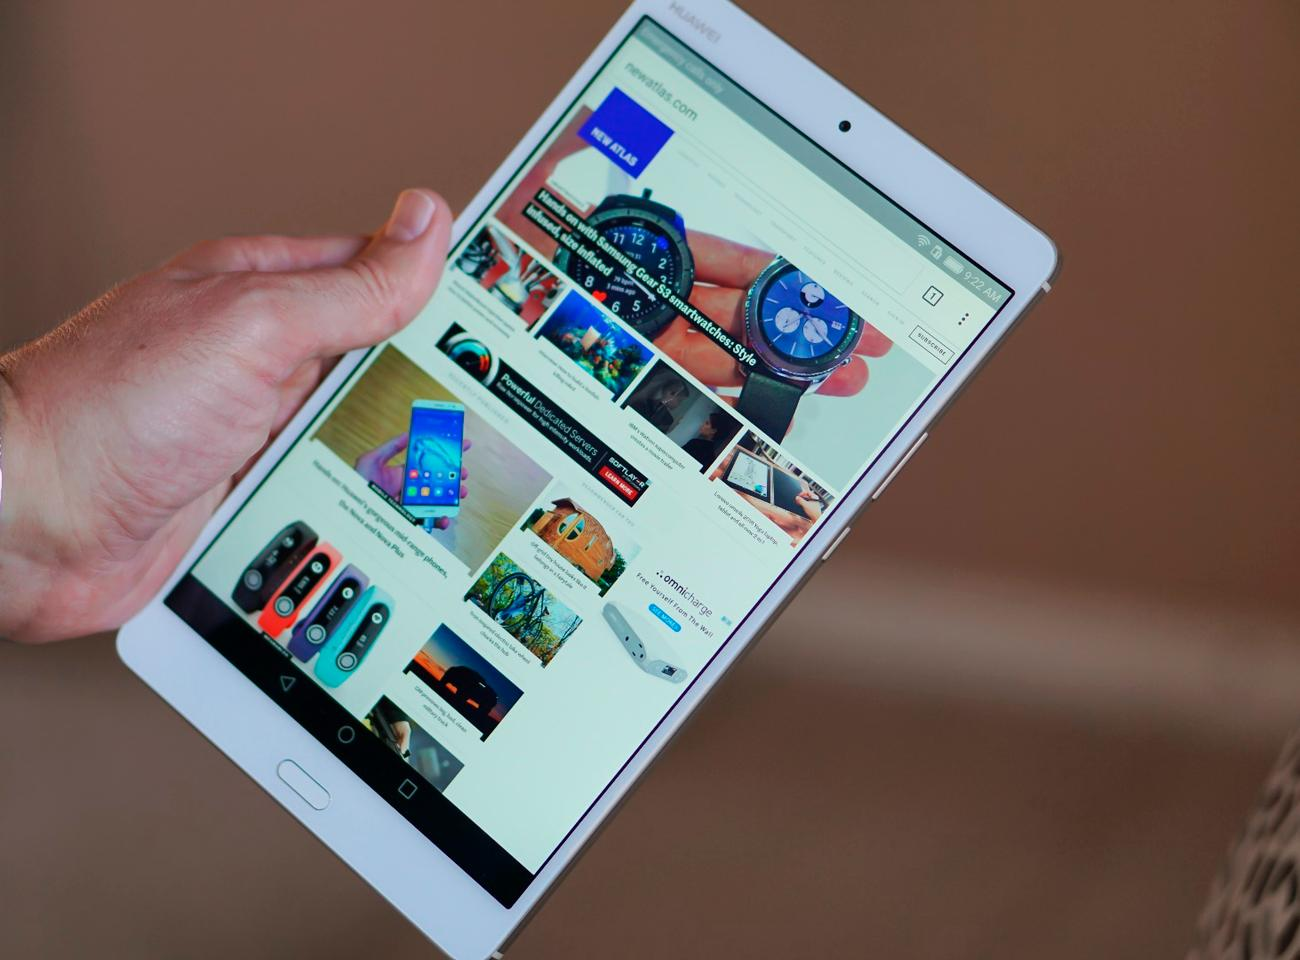 The 8.4-inch MediaPad M3 in hand